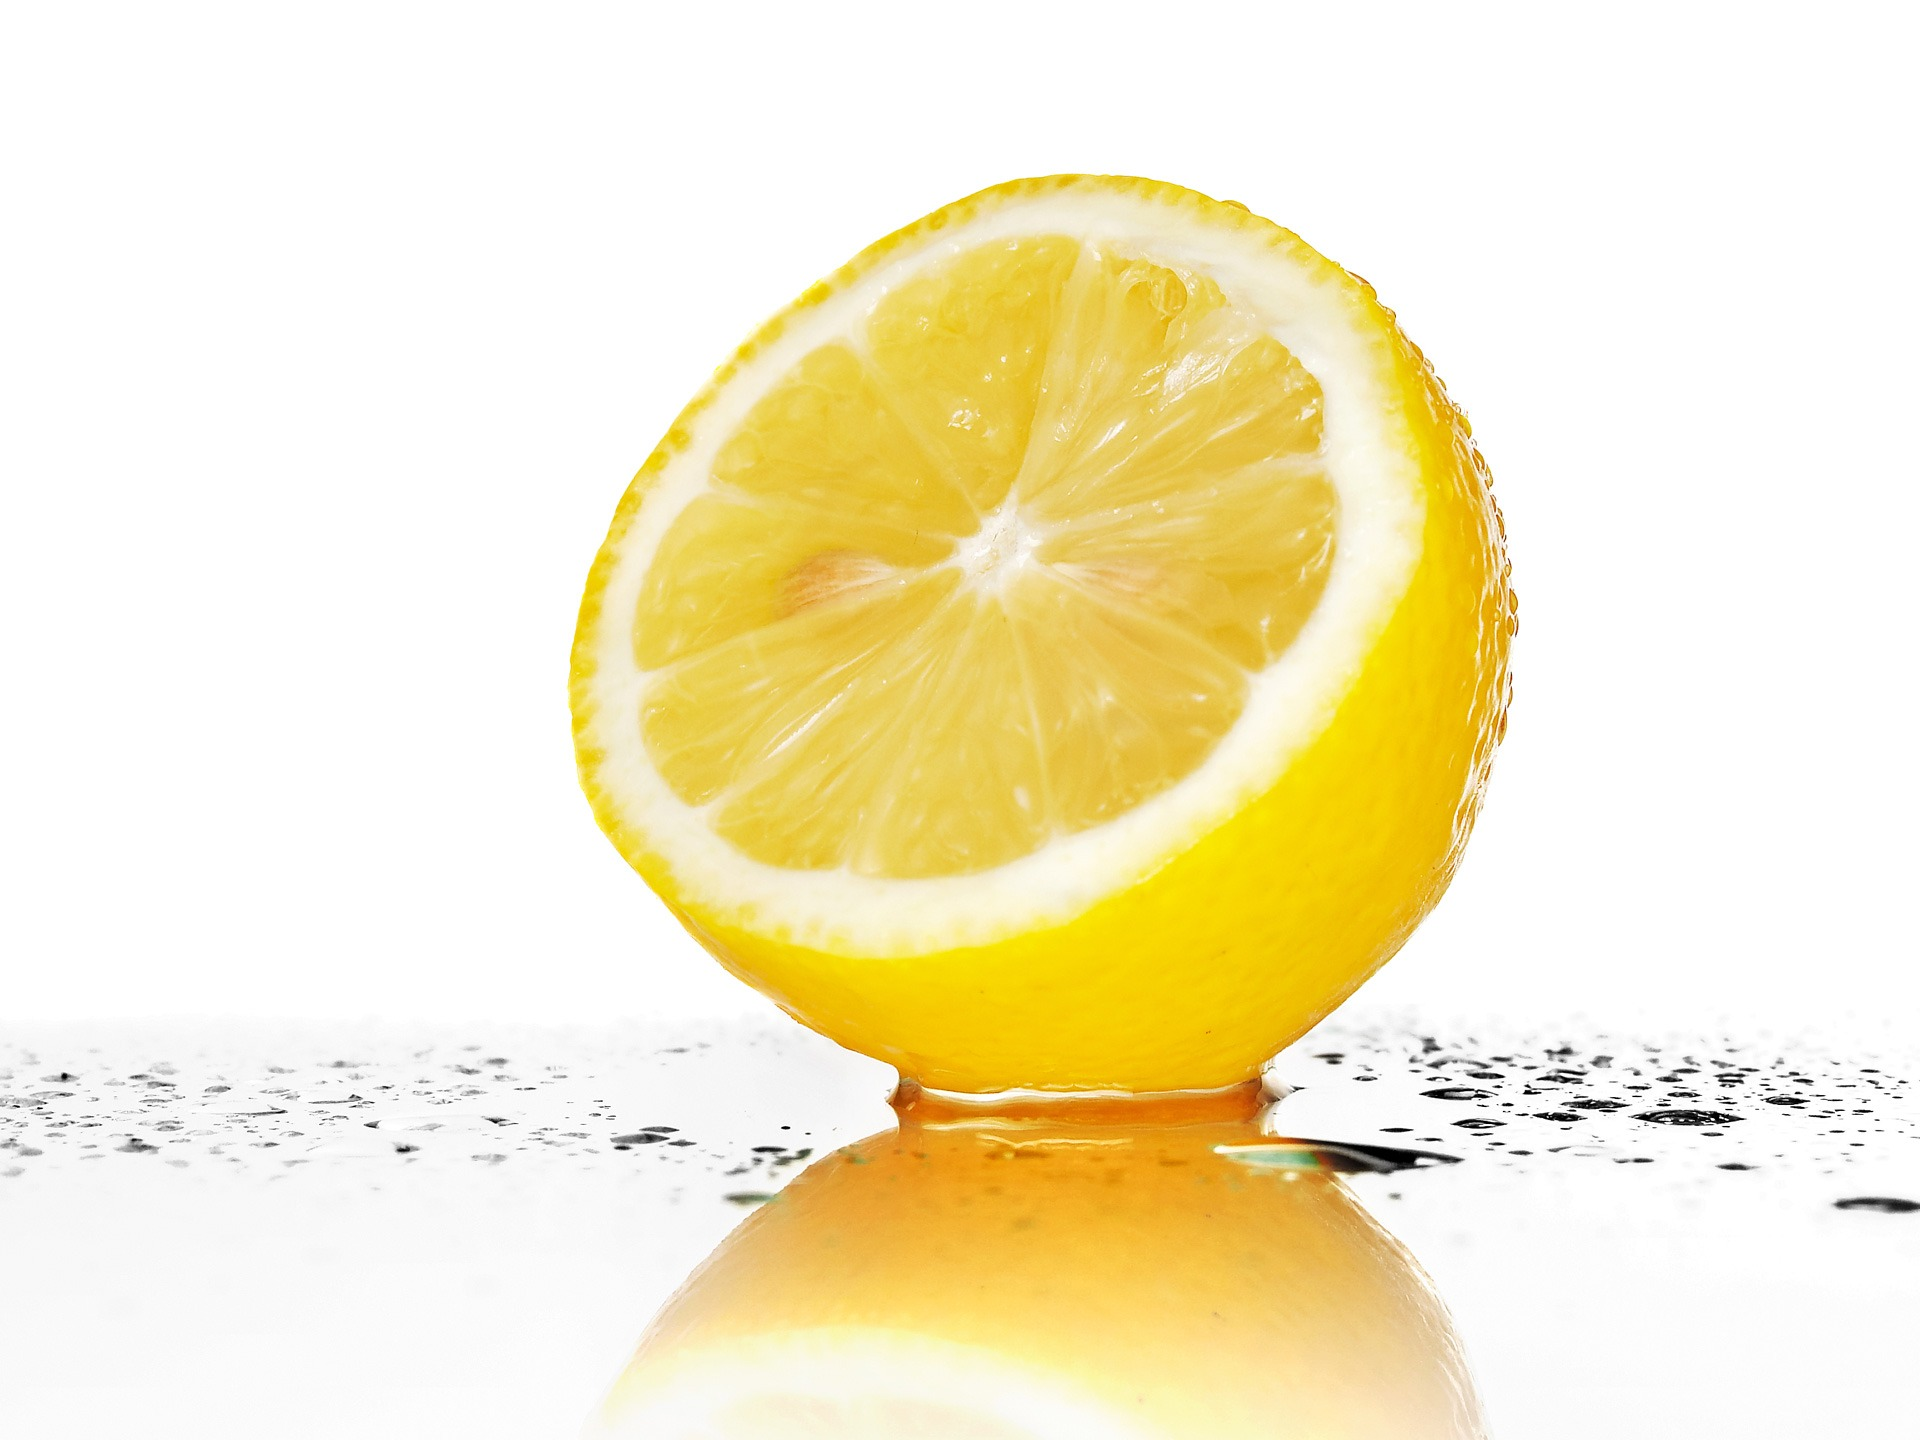 A Year of Natural Health & Beauty Tip #9: Use Lemon to Fade Skin Discolorations